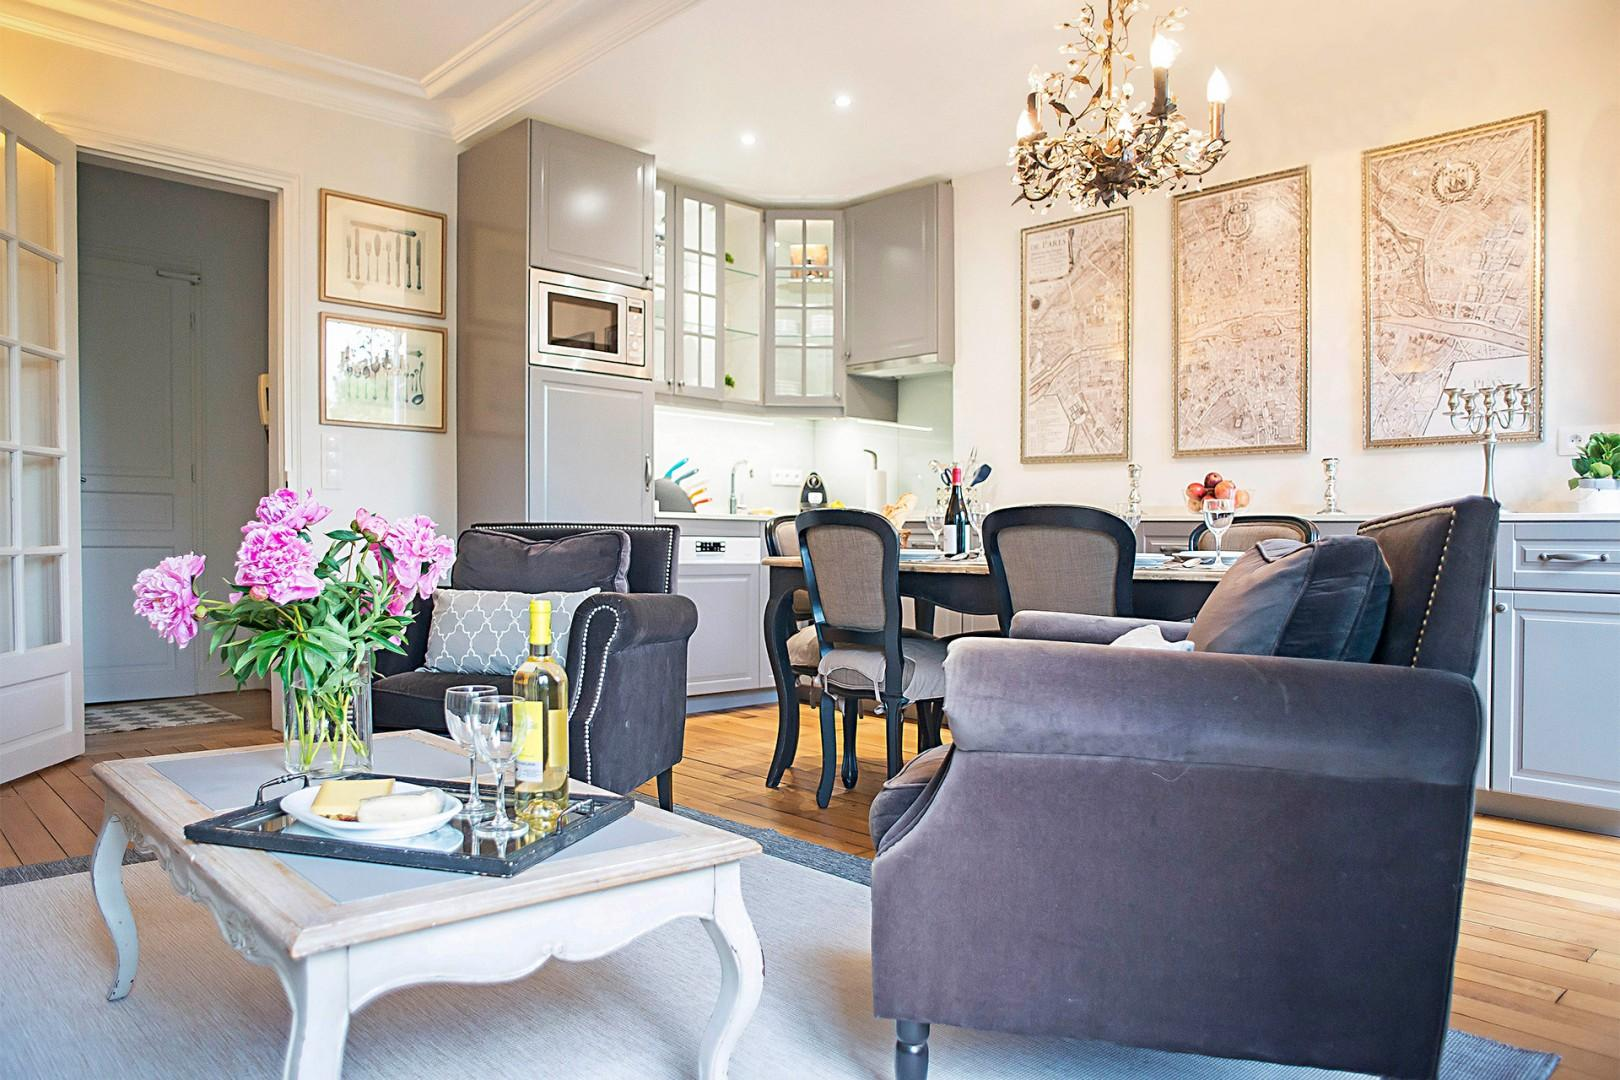 The large living and dining area is perfect for entertaining family and friends.